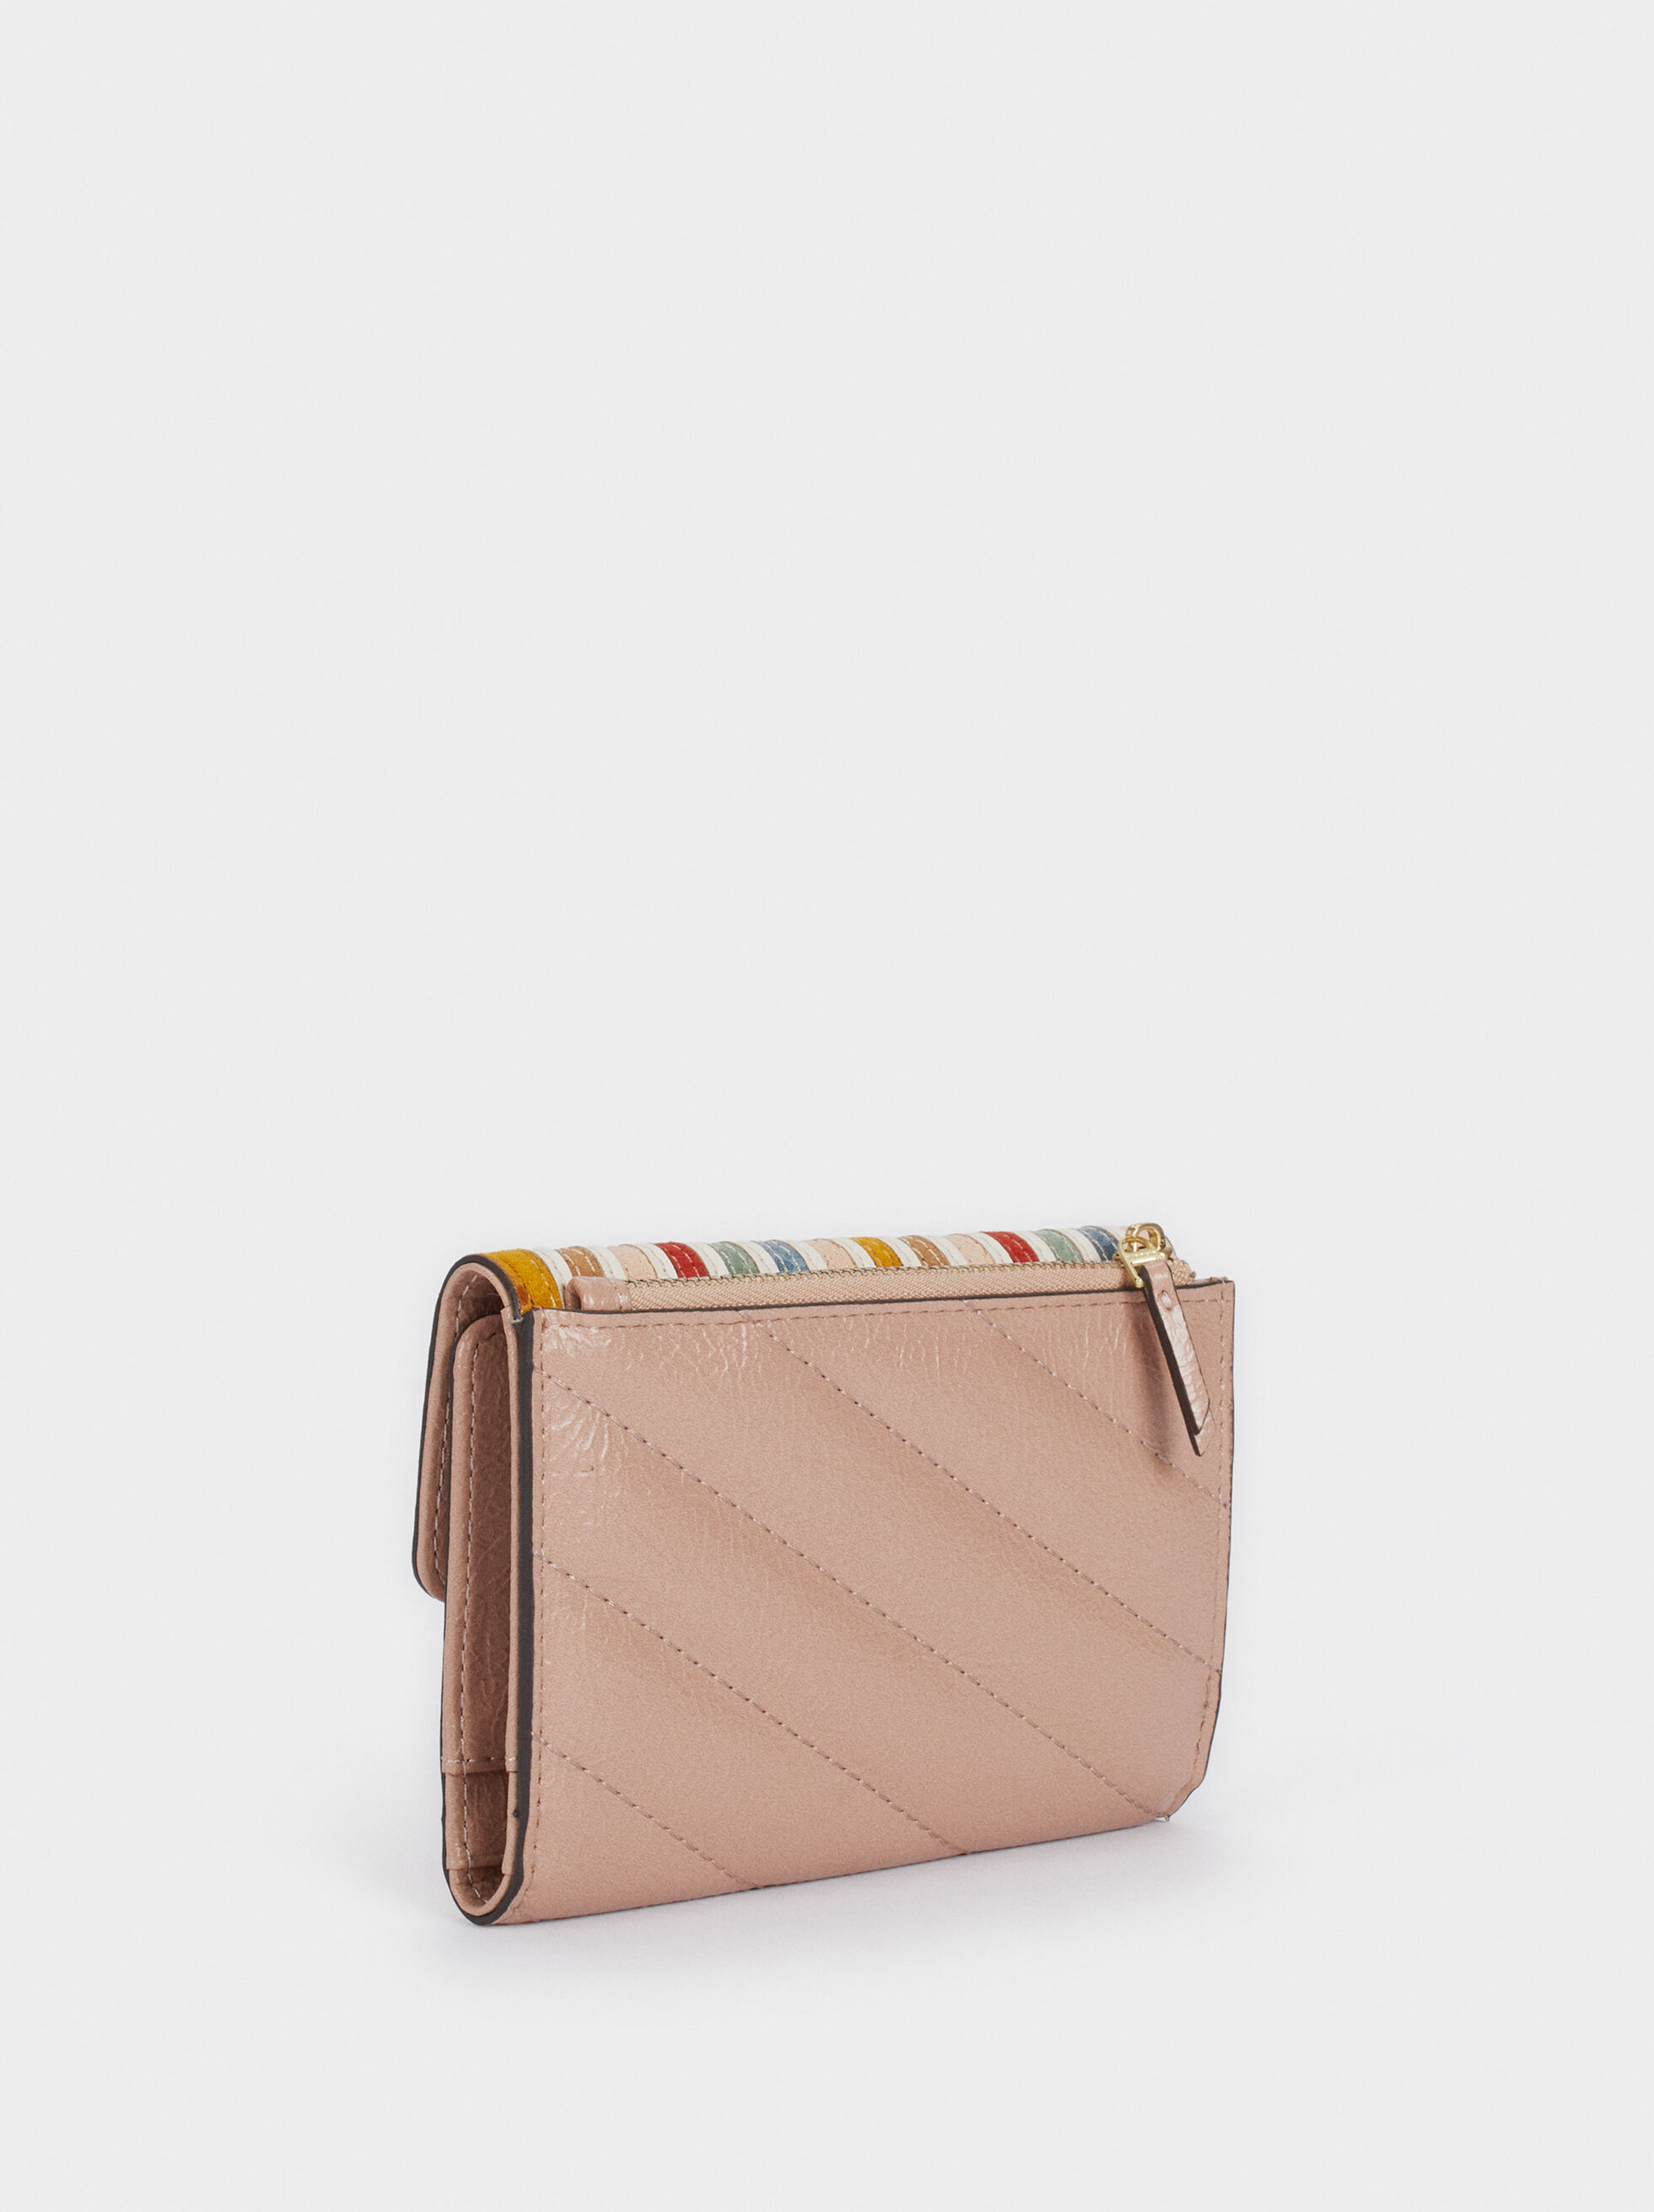 Wallet With Flap Closure, Pink, hi-res